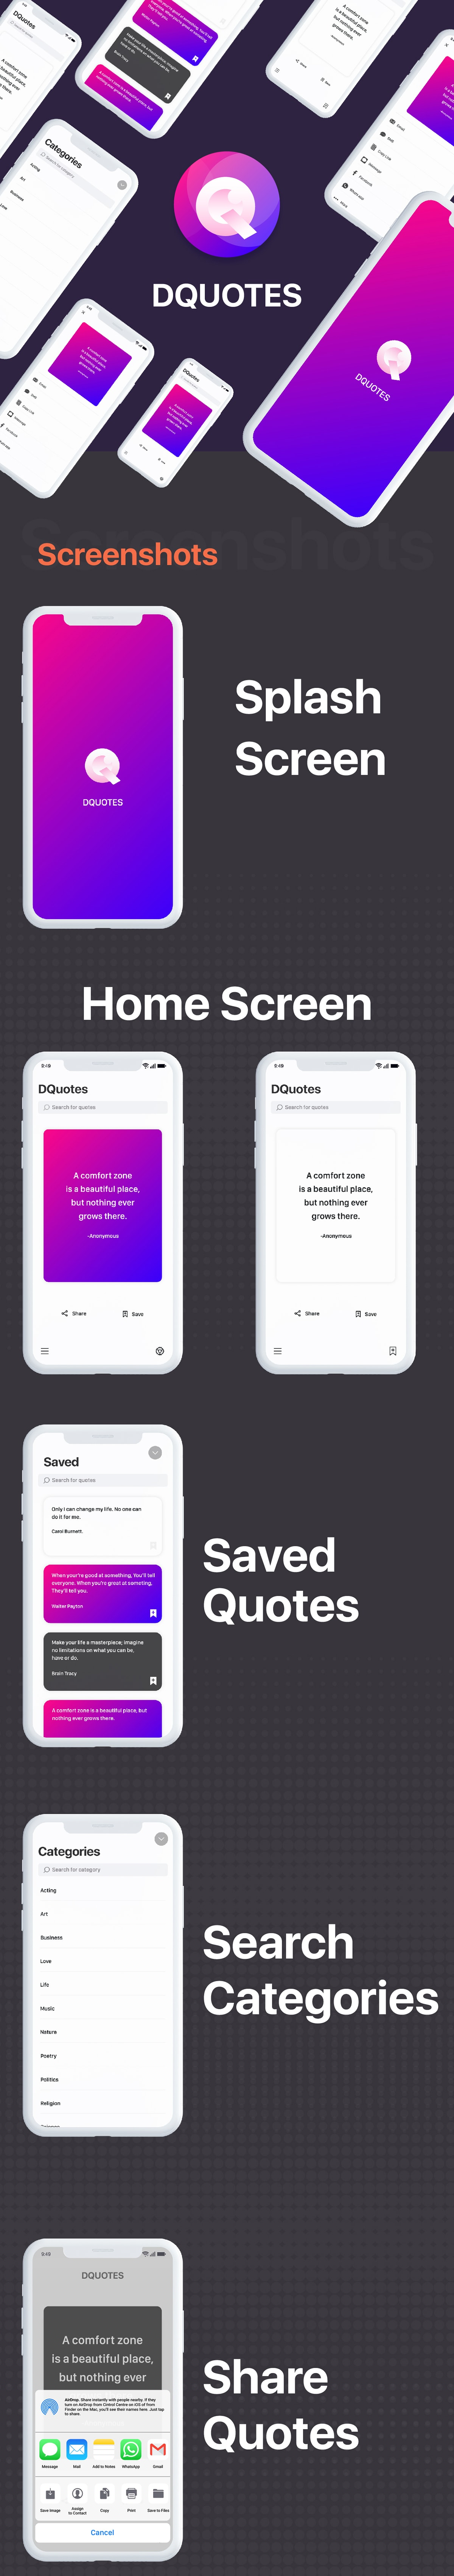 Quotes iOS App with Admin Panel - 2